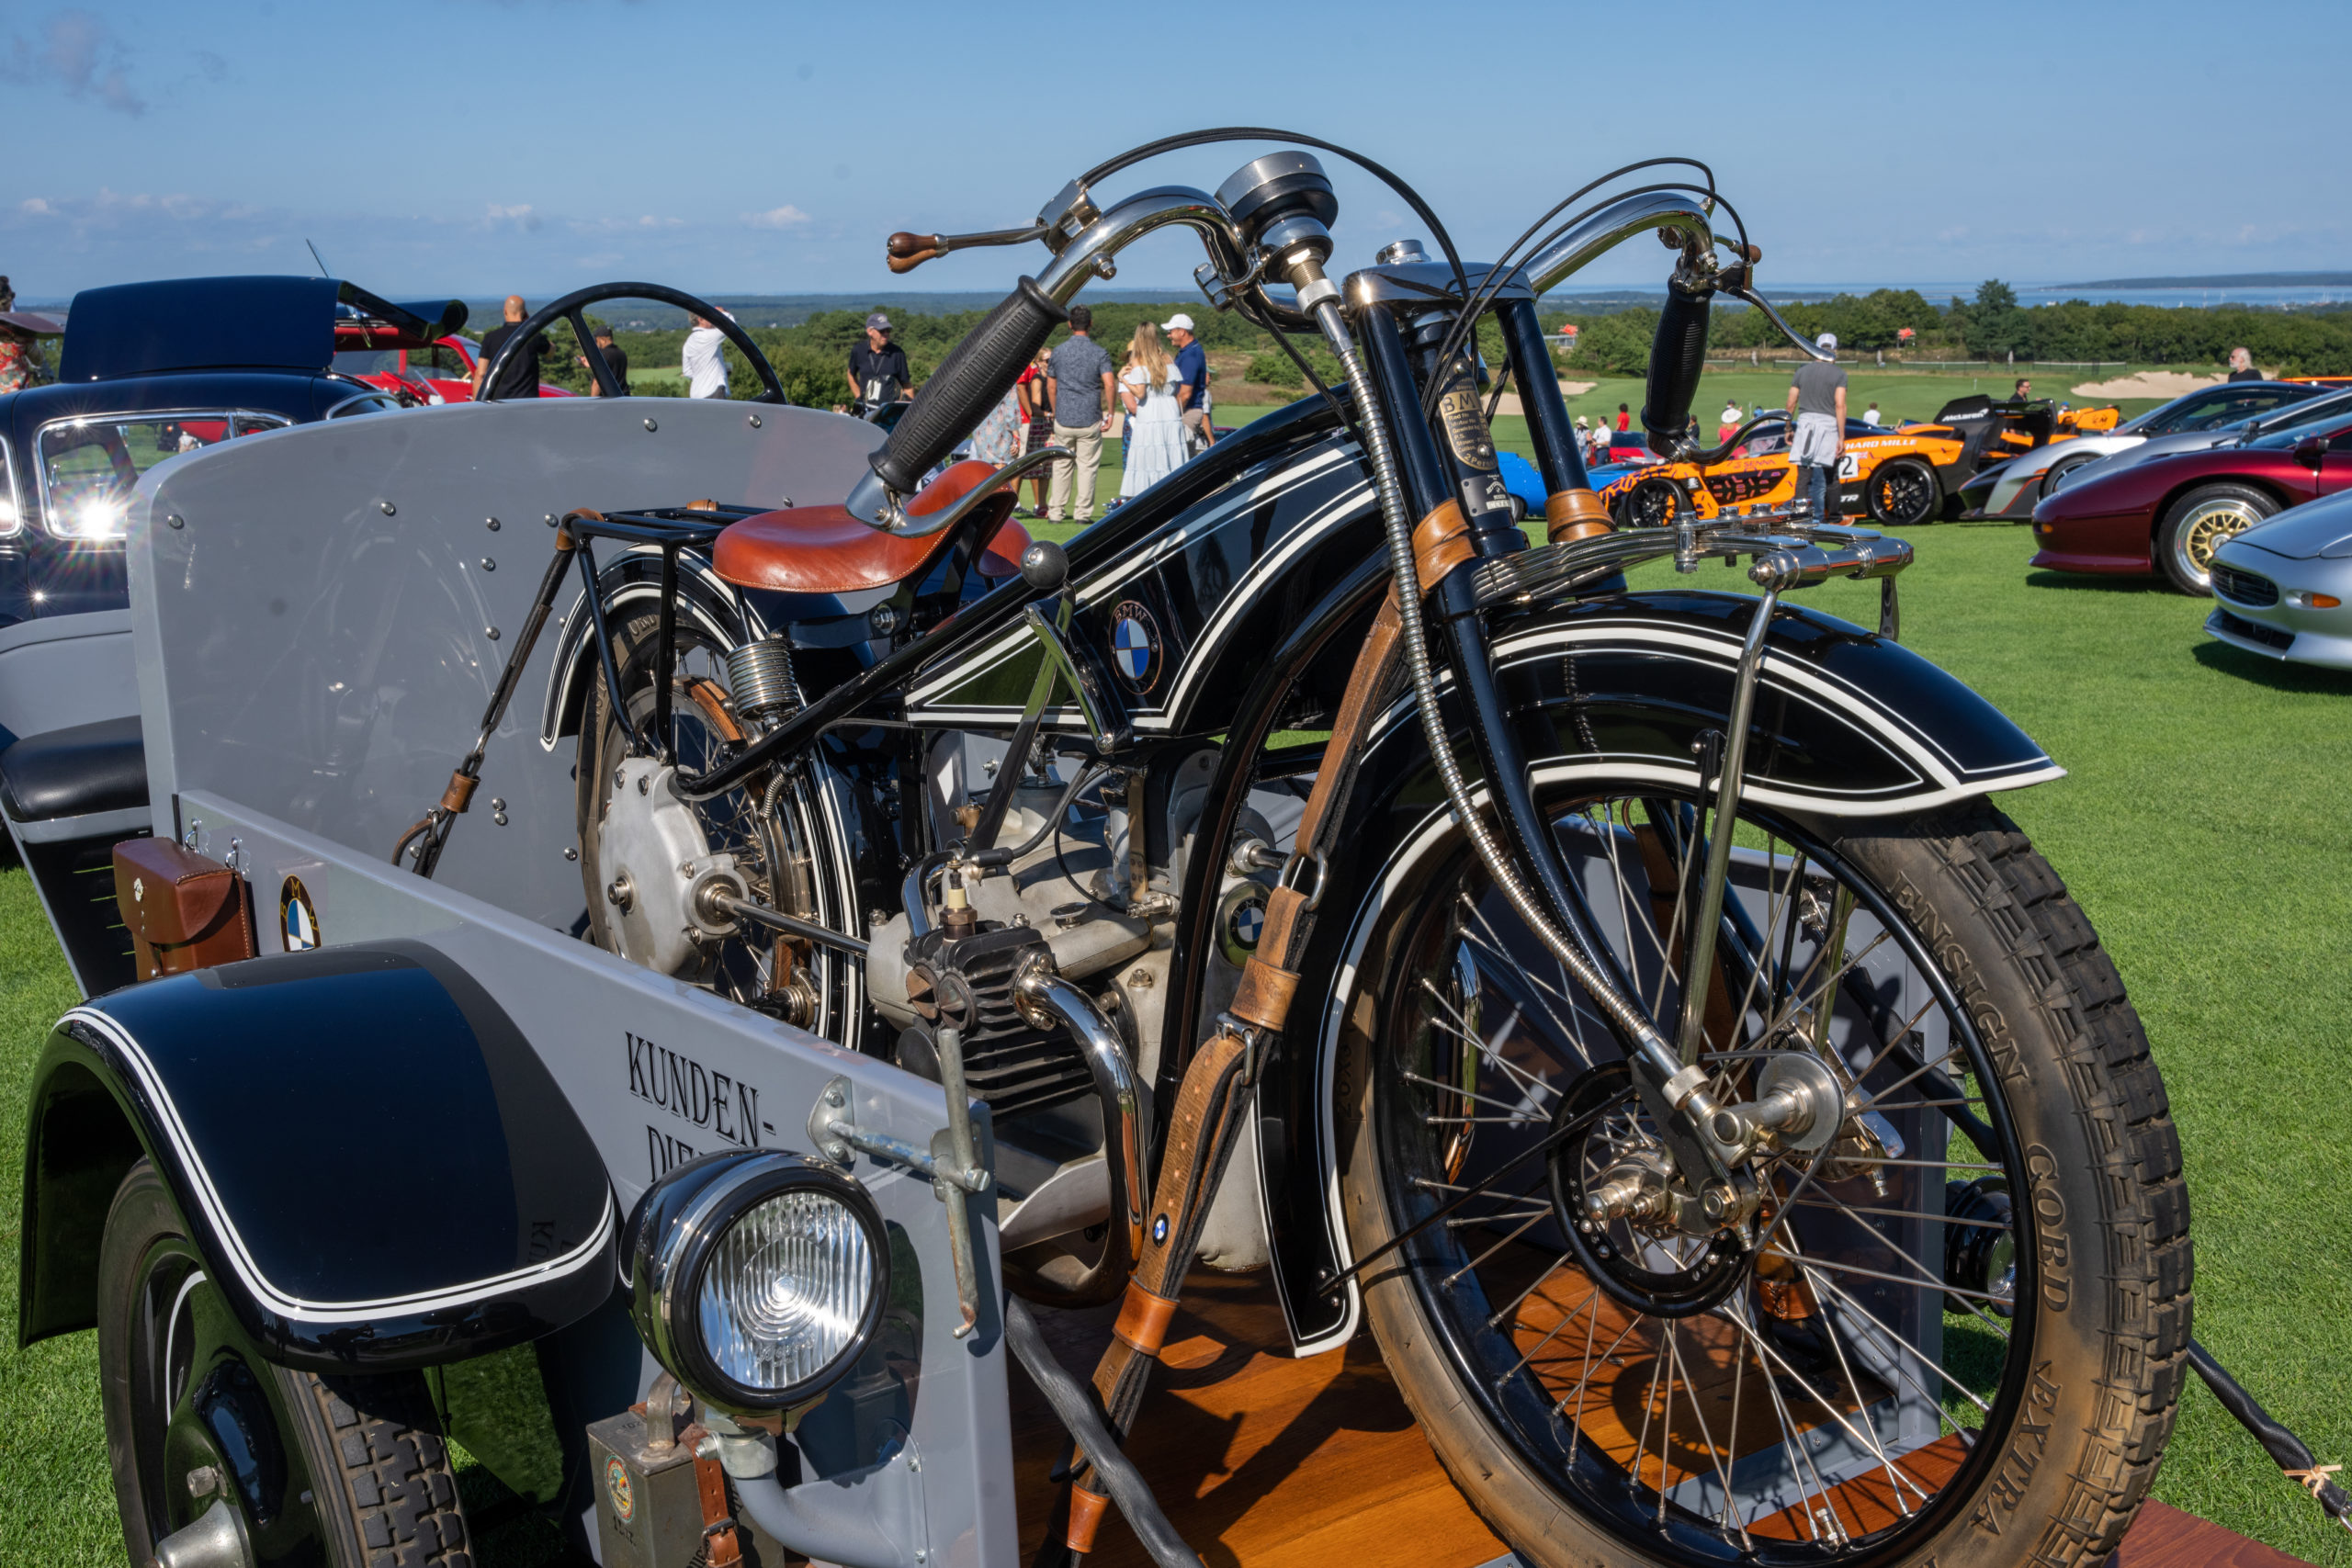 A 1923 BMW motorcycle.